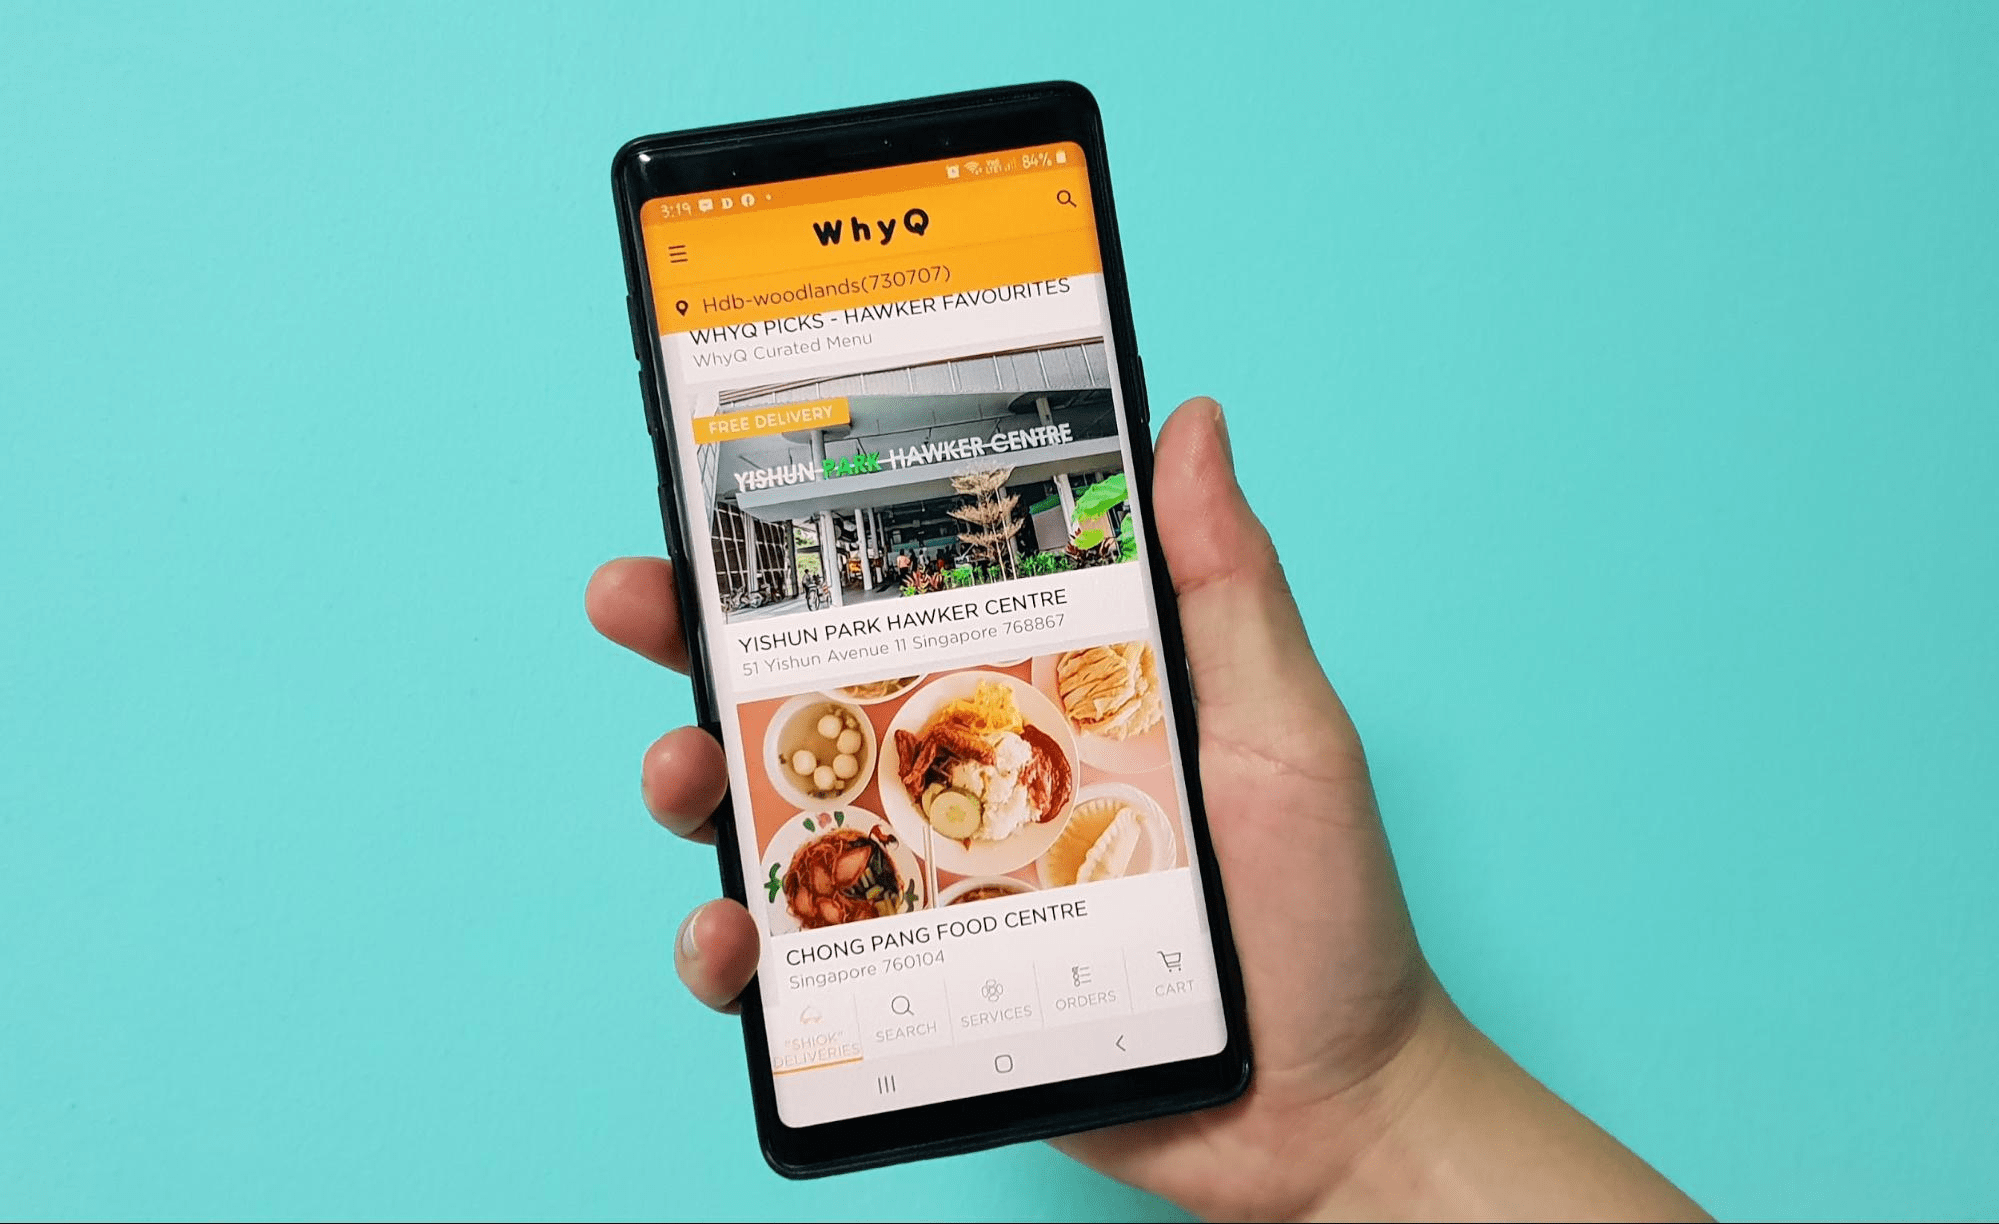 food delivery promo codes - whyQ - free delivery